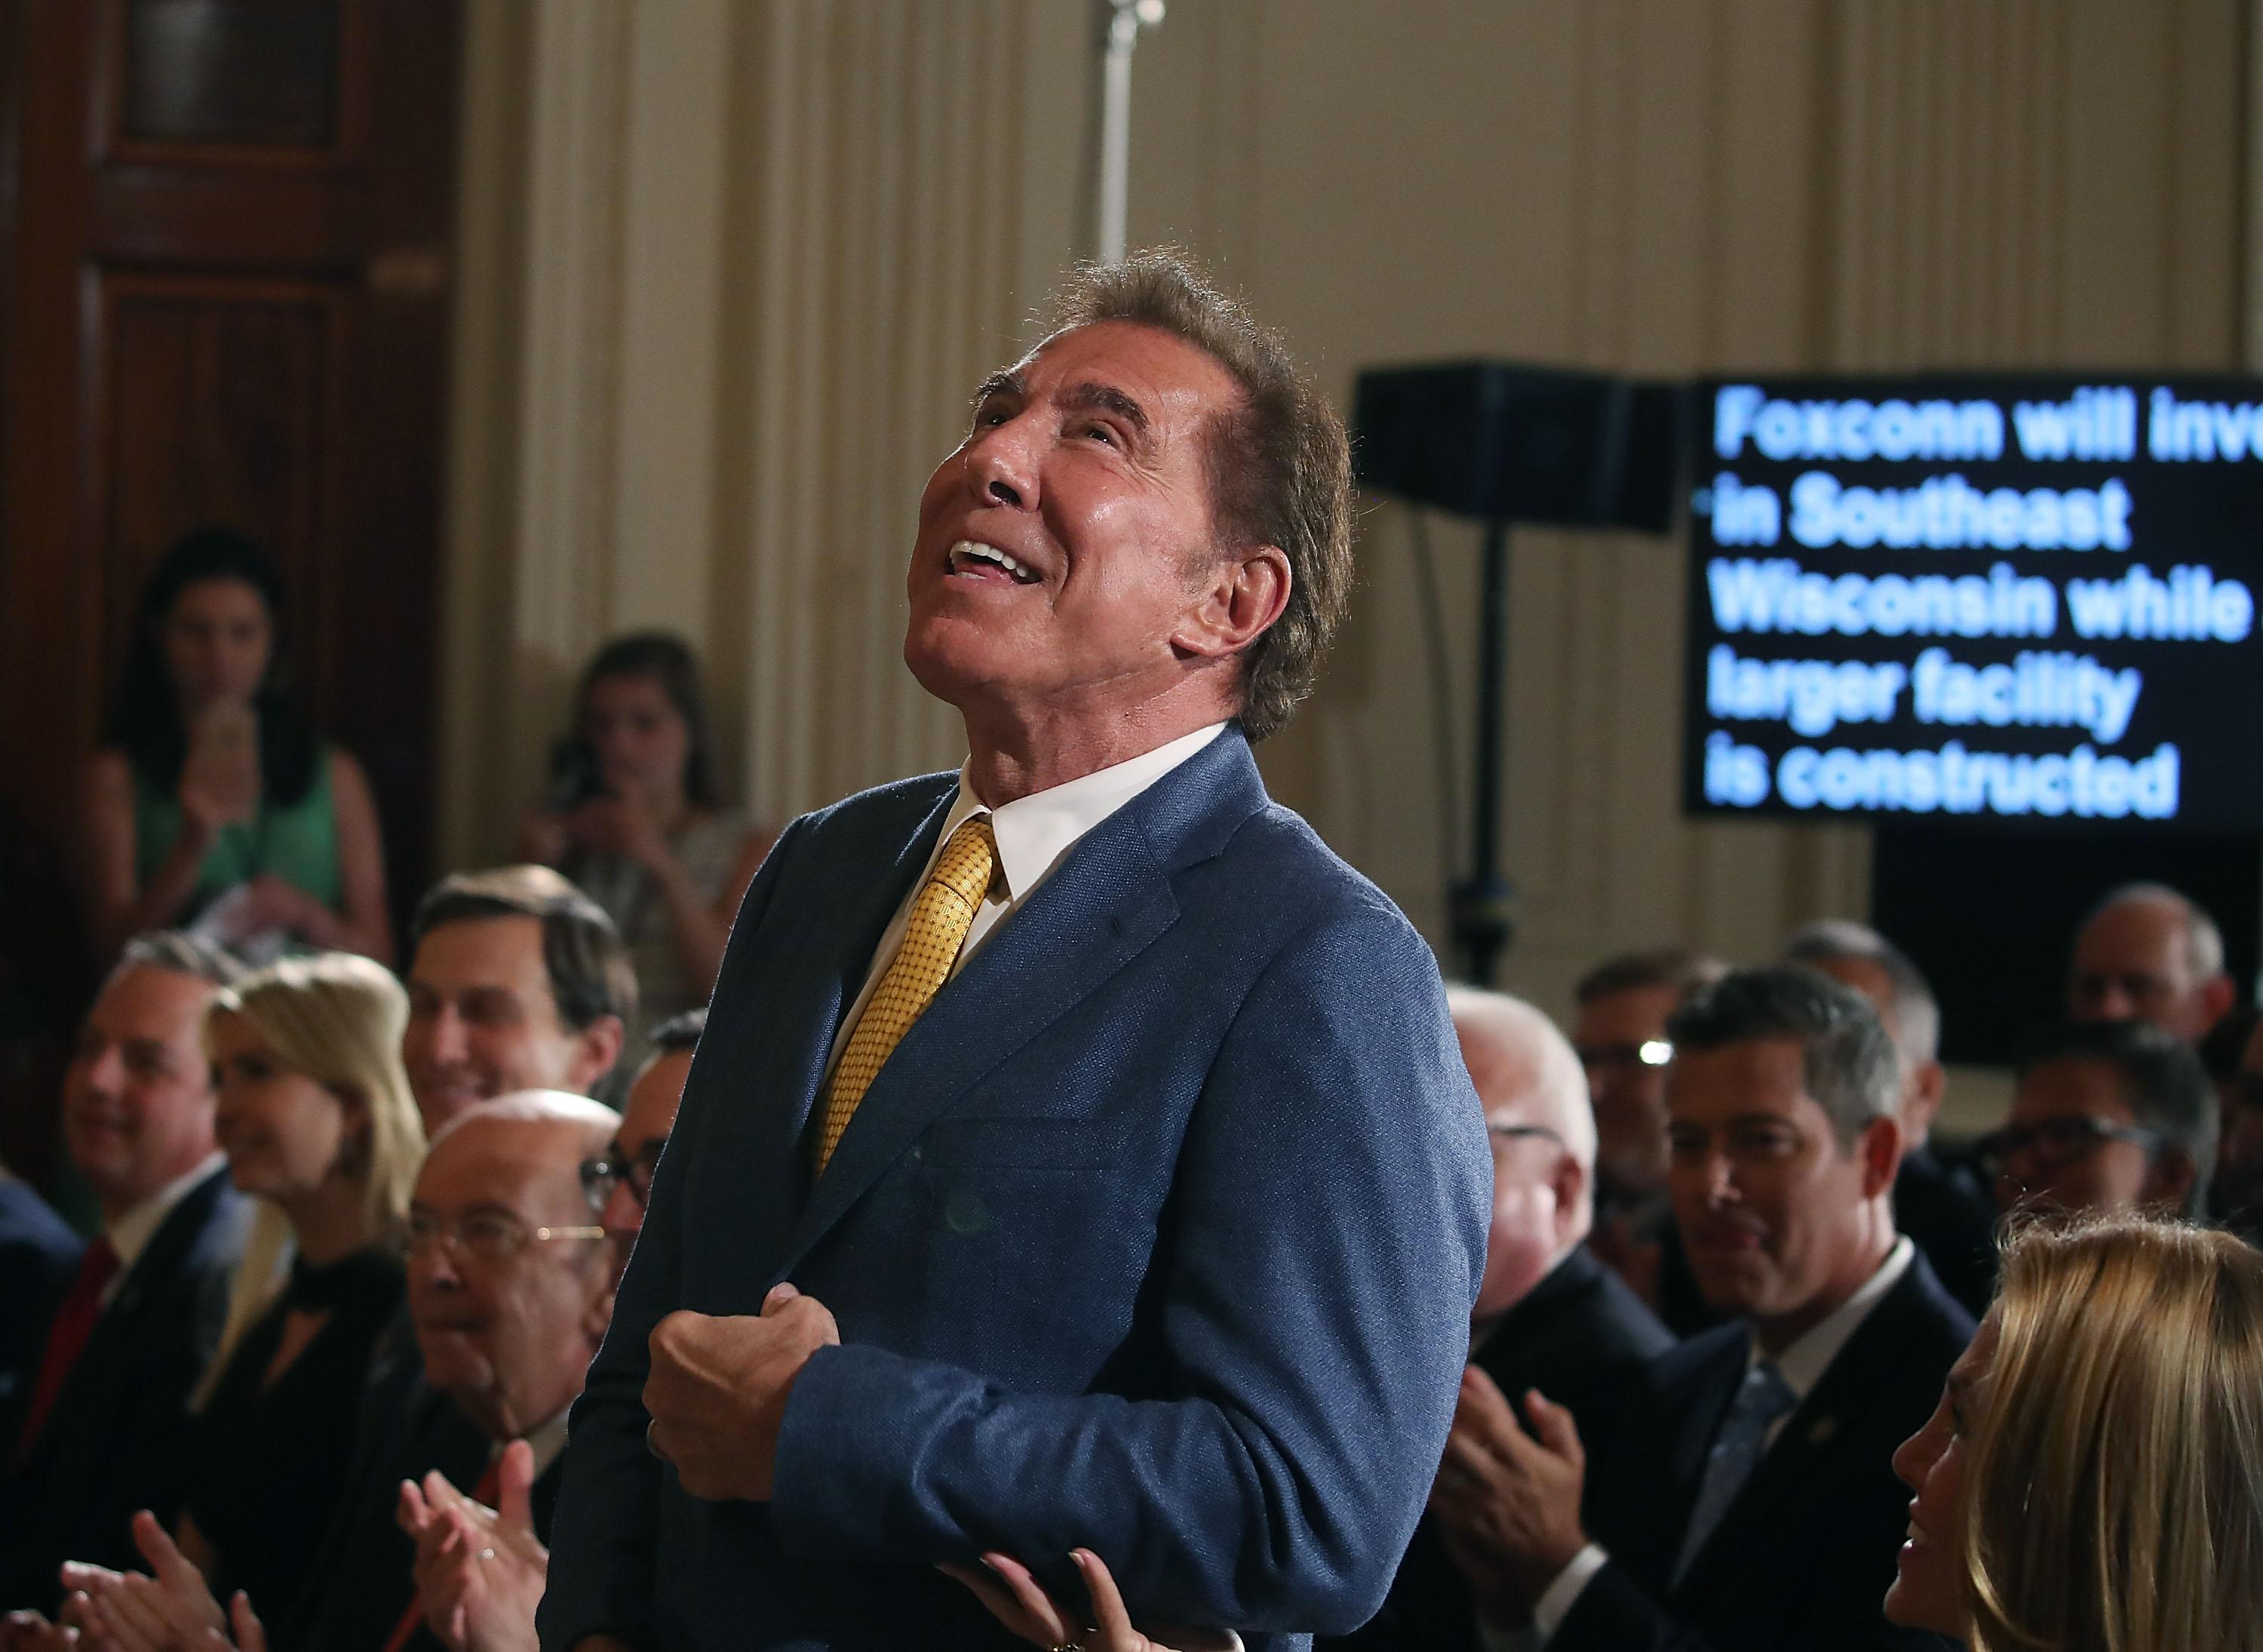 Steve Wynn, CEO of Wynn Resorts, is acknowledged at a news conference held by Donald Trump in the East Room of the White House July 26, 2017 in Washington, DC.